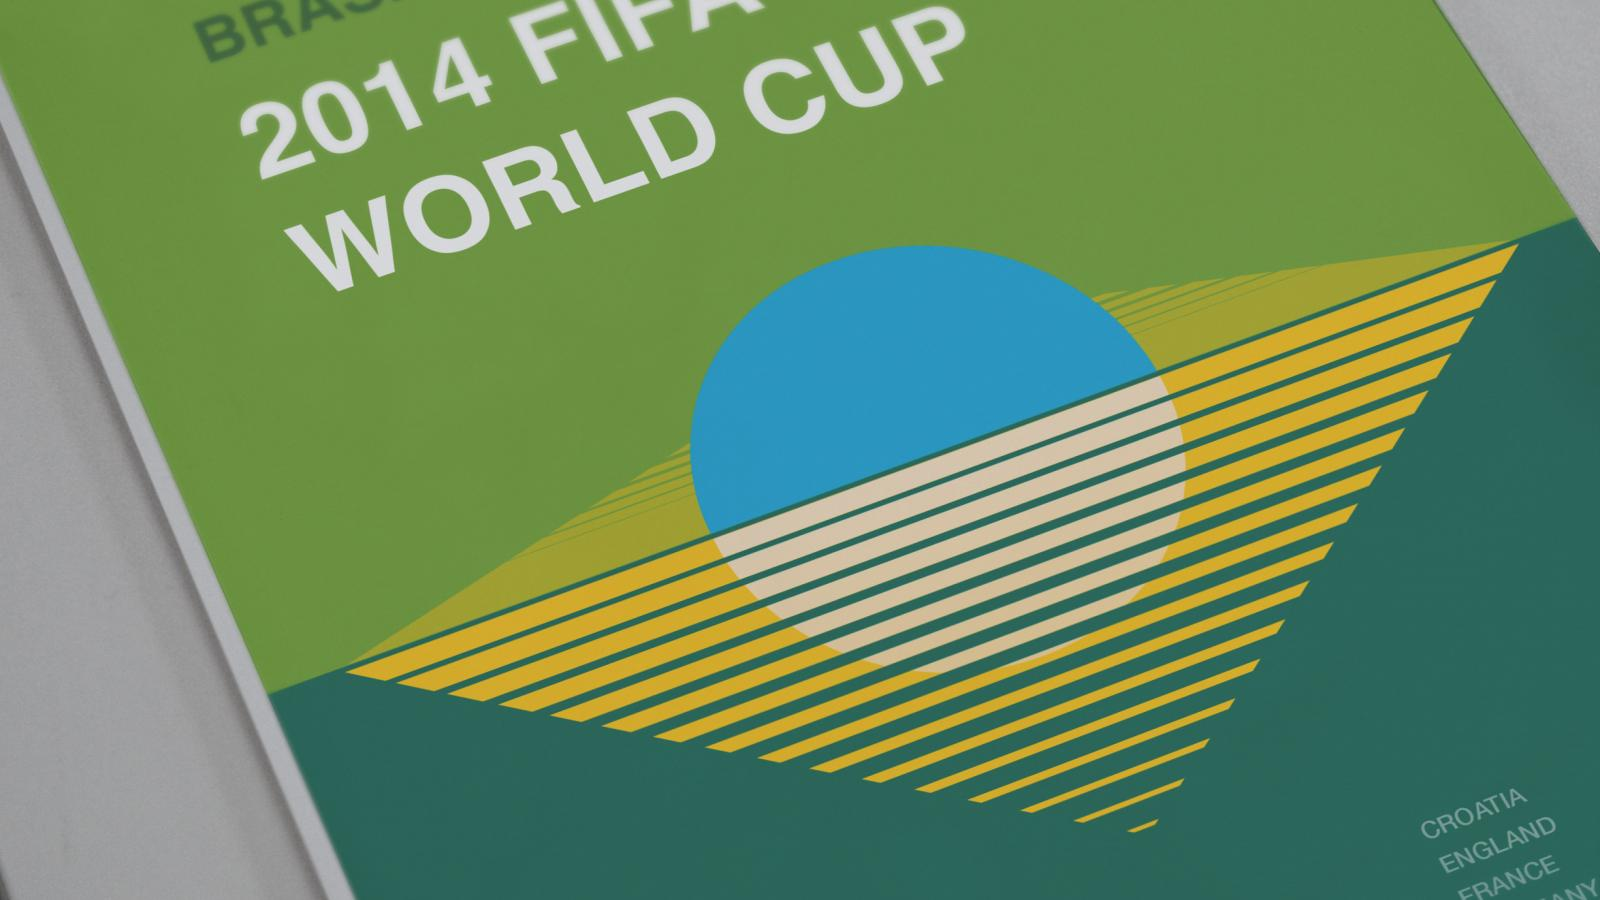 2014 FIFA World Cup Poster